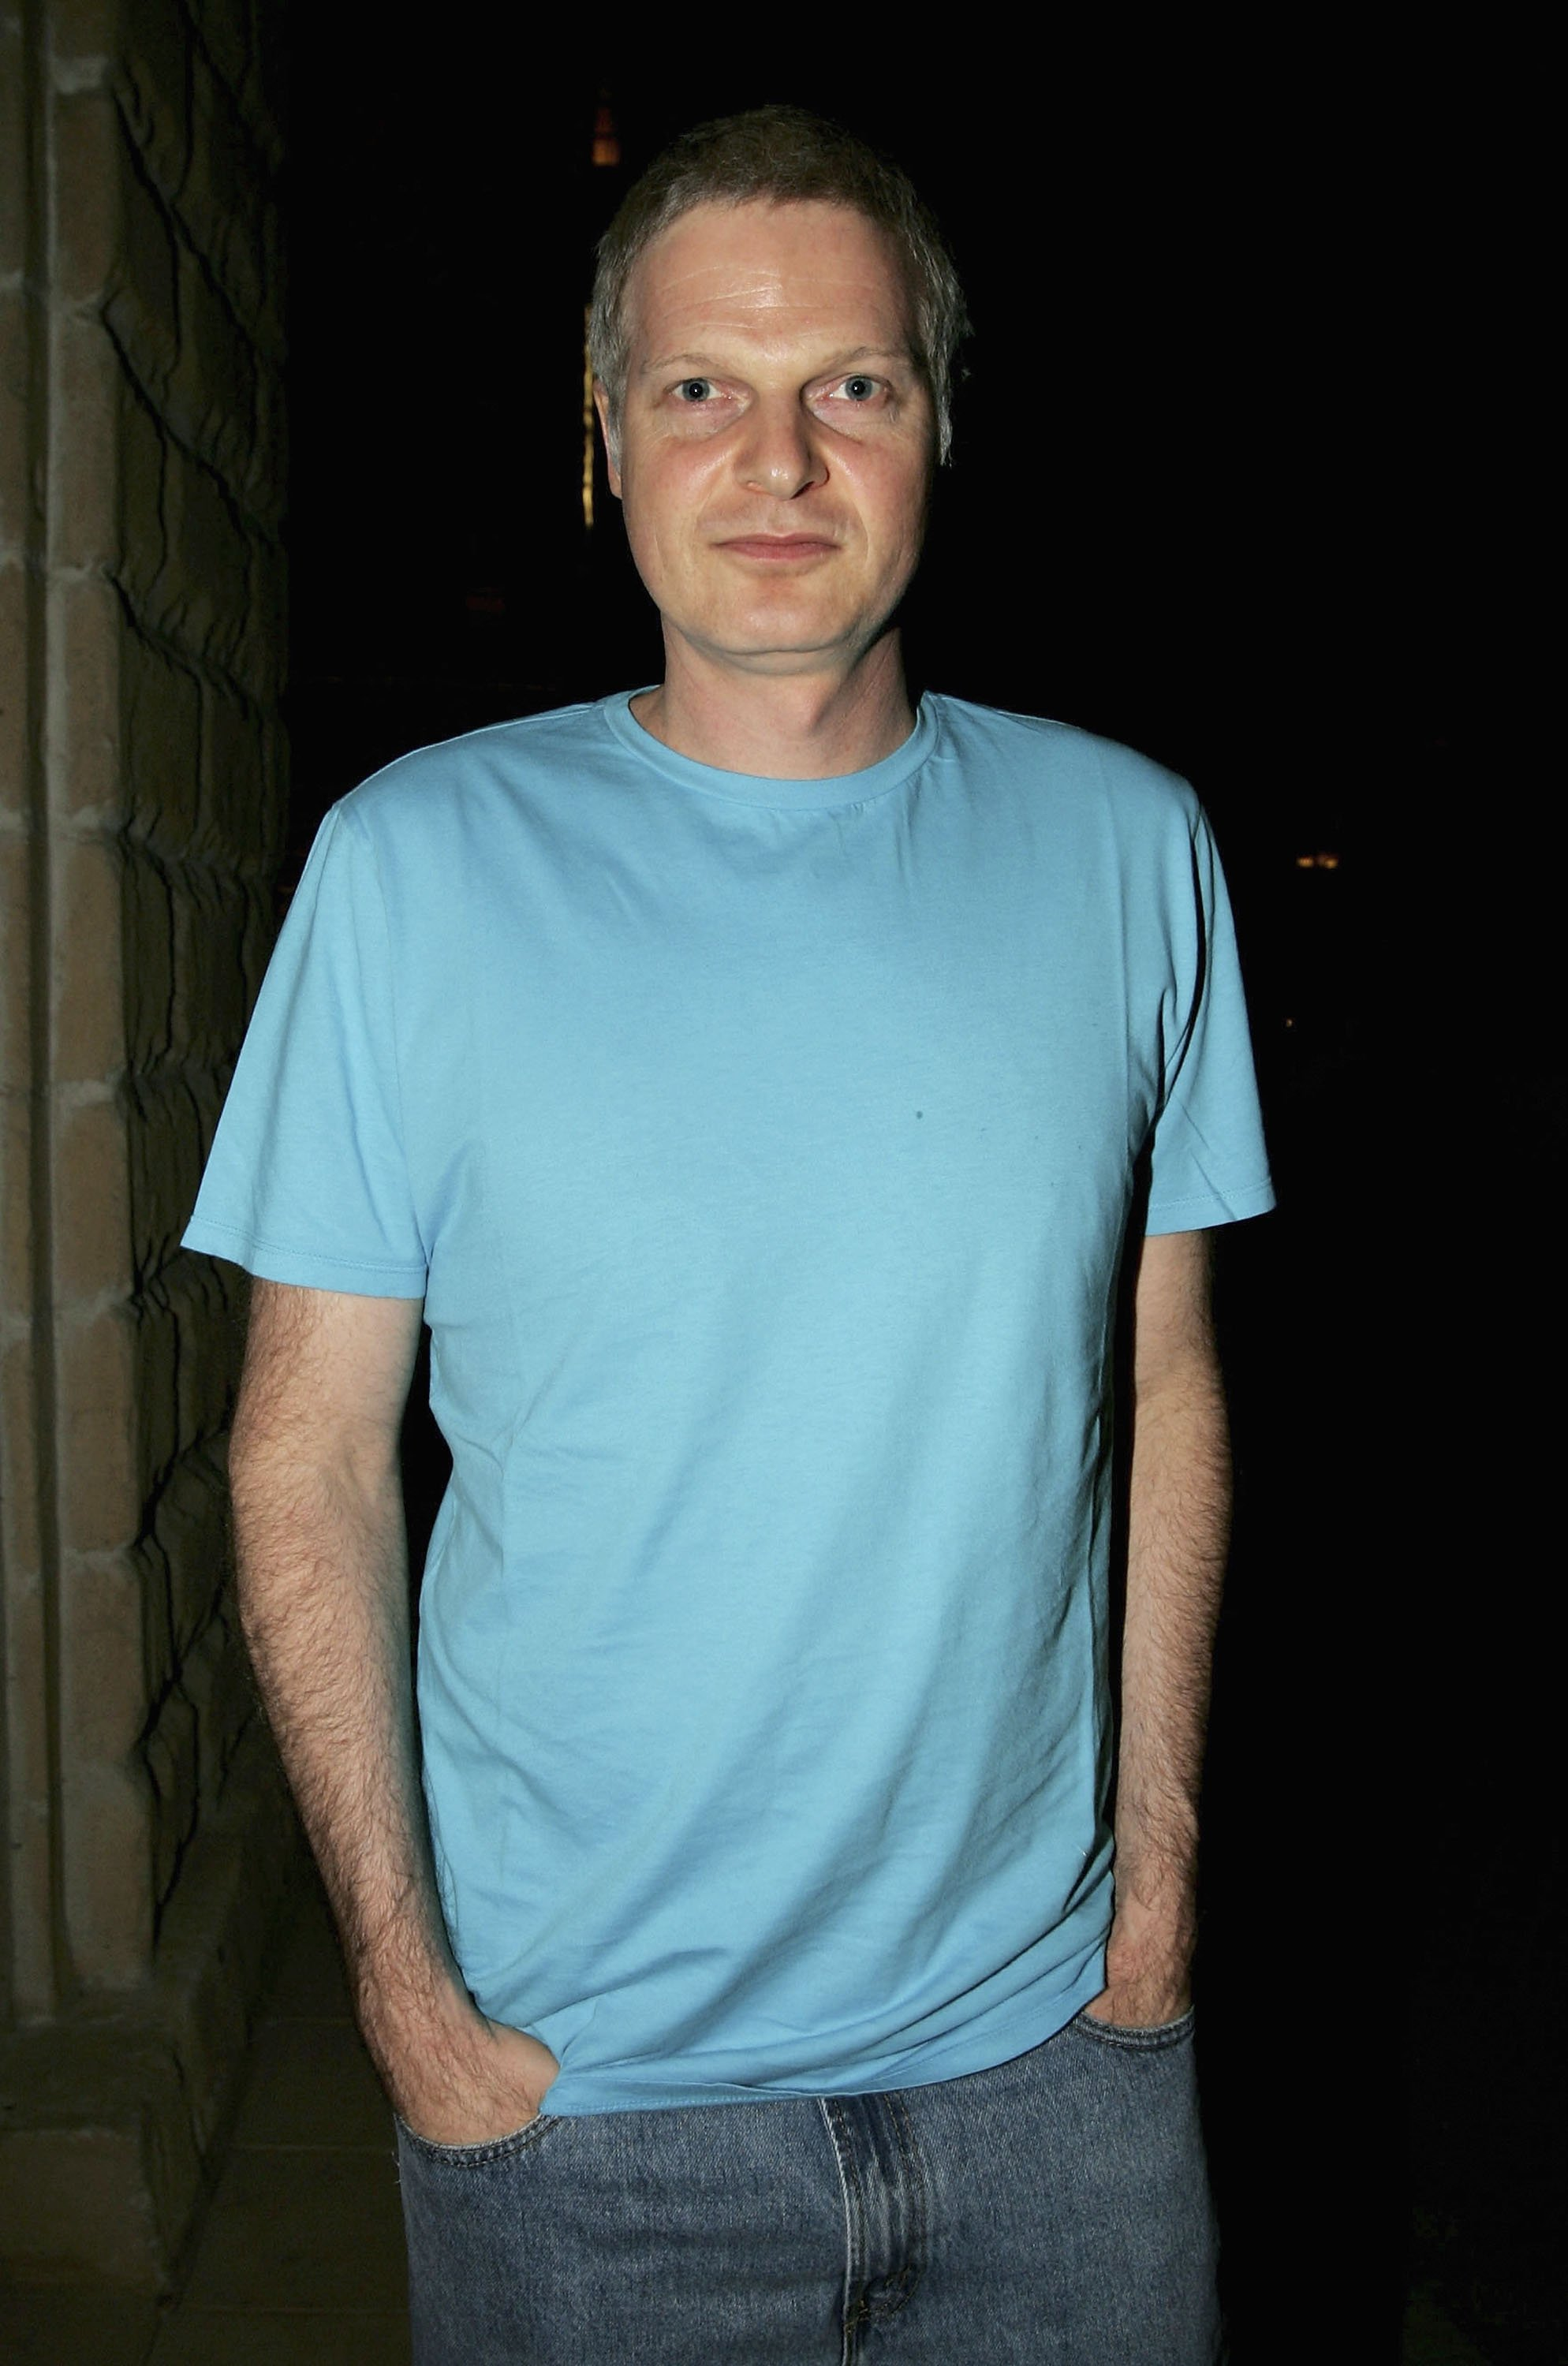 Steve Bing poses for a photo at The Madinat Jumeirah on December 11, 2005, in Dubai, United Arab Emirates. | Source: Getty Images.